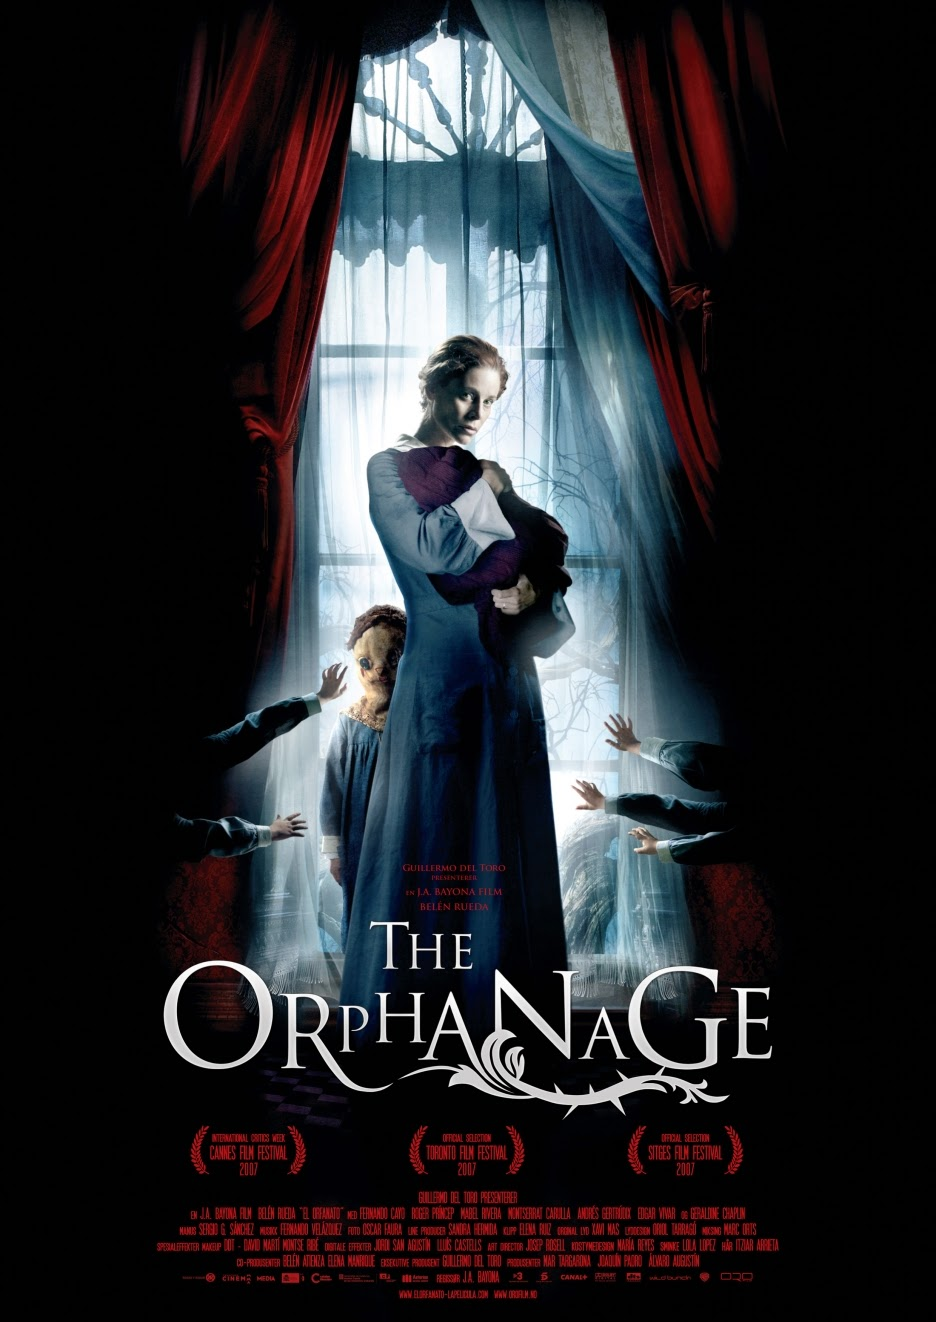 the orphanage movie critique essay